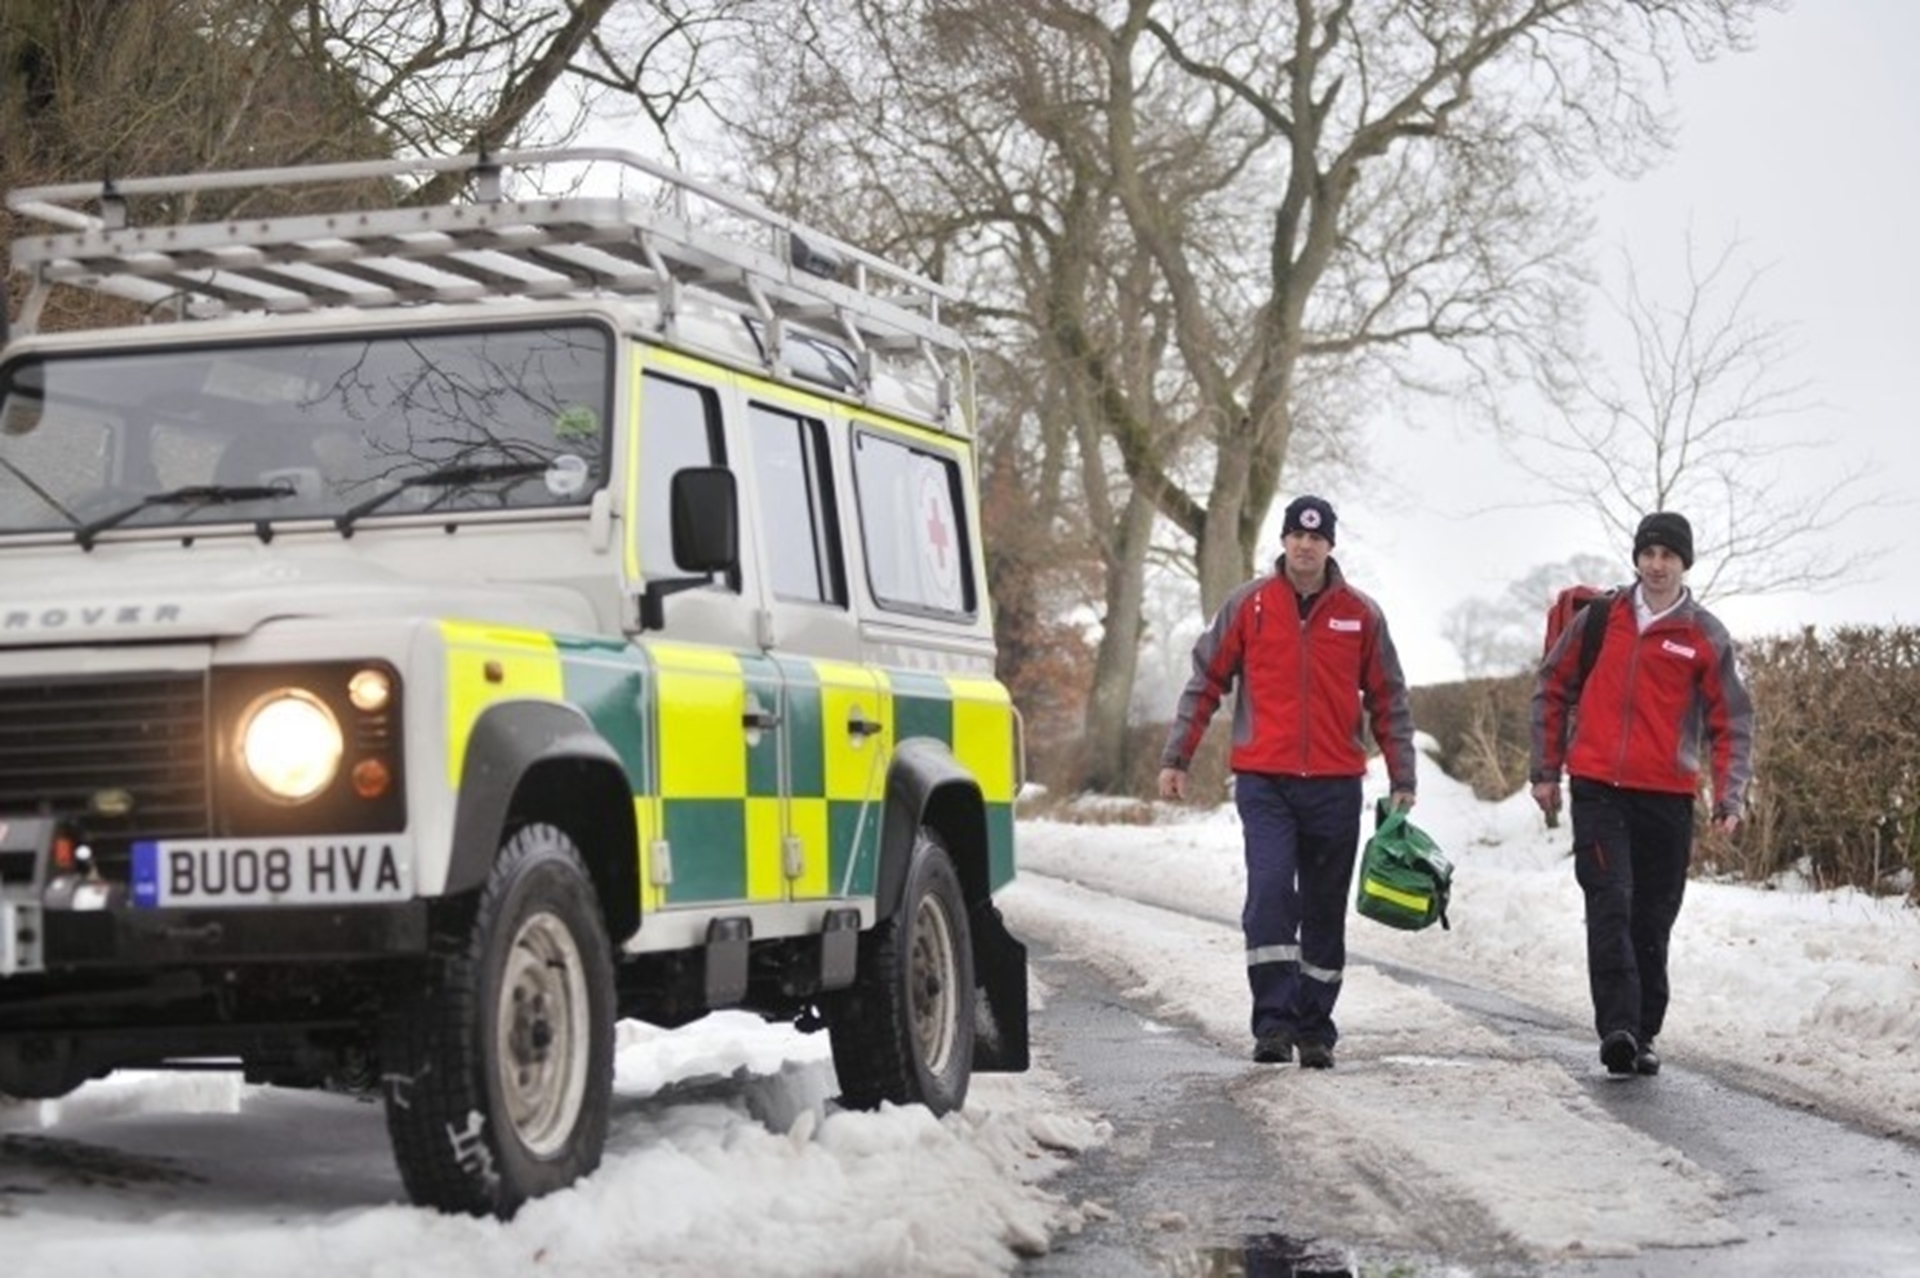 Land Rover steps in for snow patrol